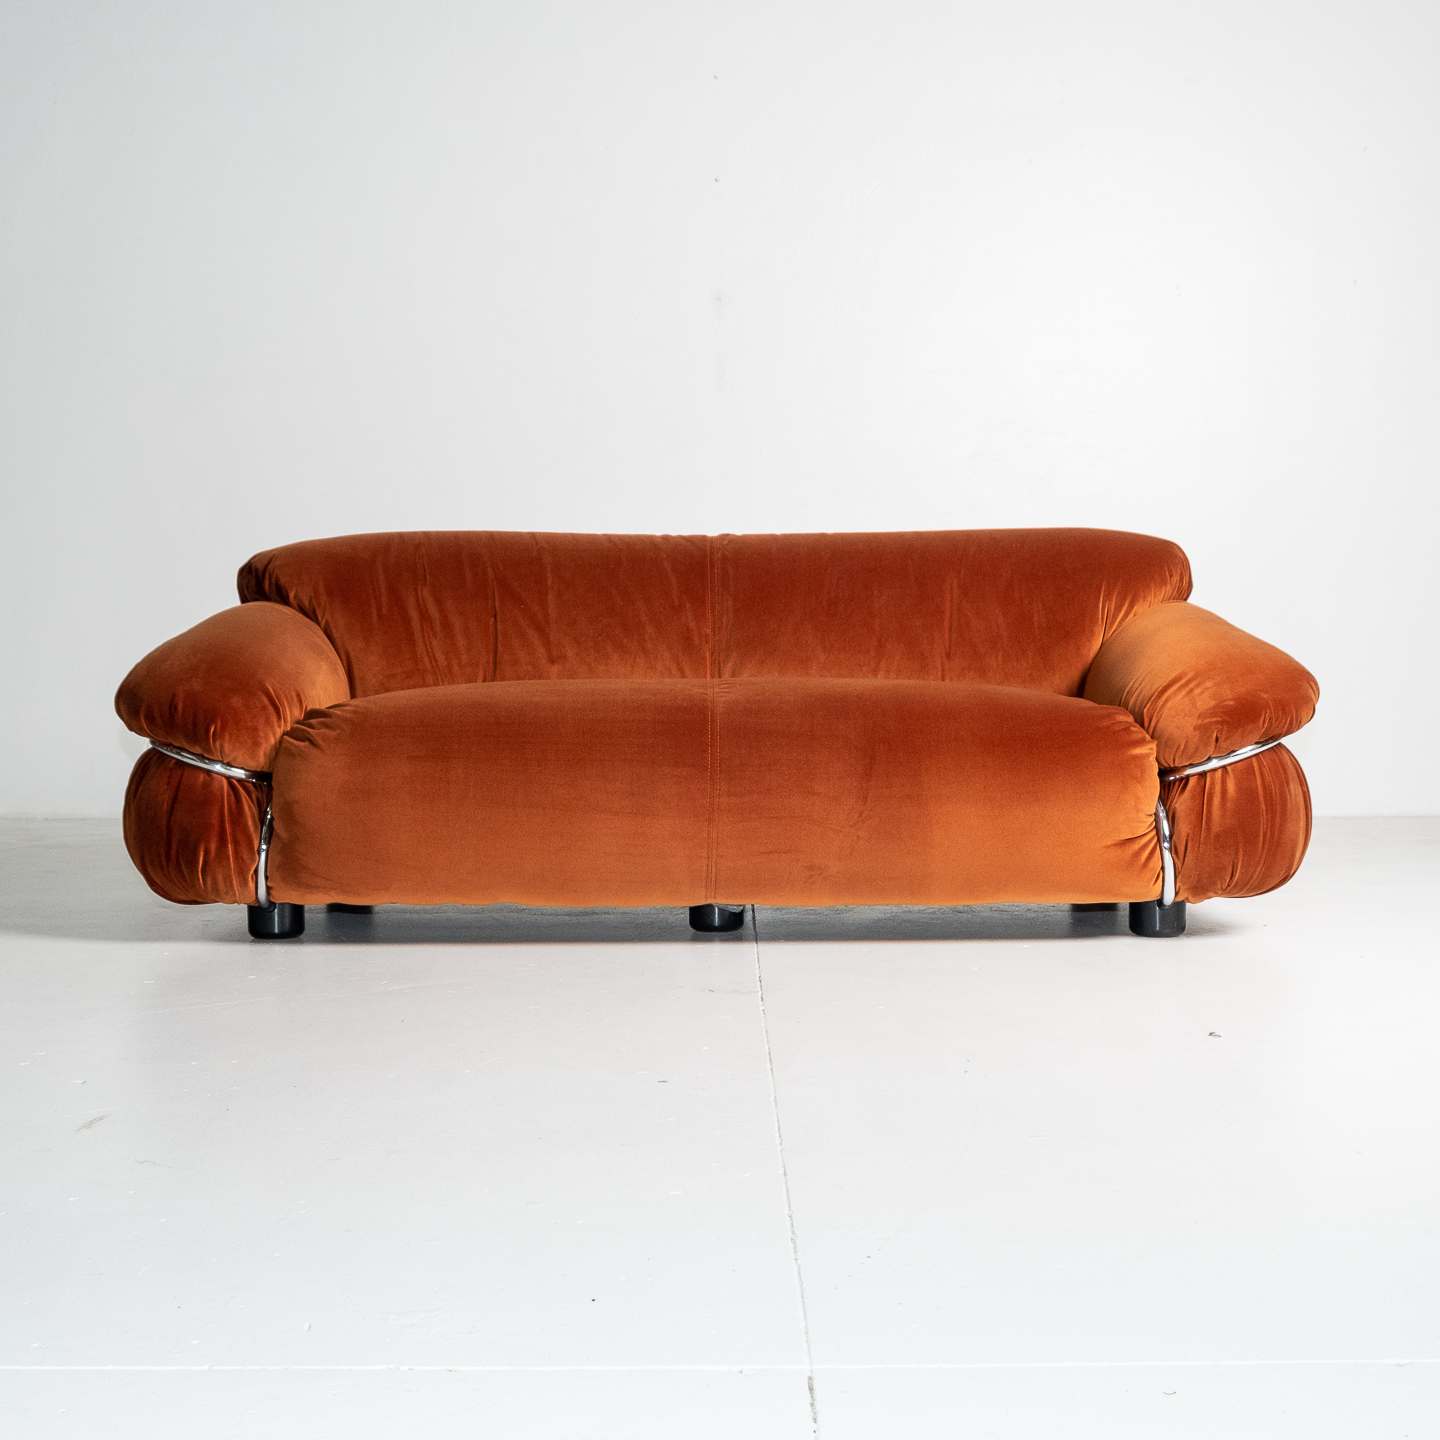 Model 595 Sesann Sofa By Gianfranco Frattini For Cassina, 1970s, Italy 180